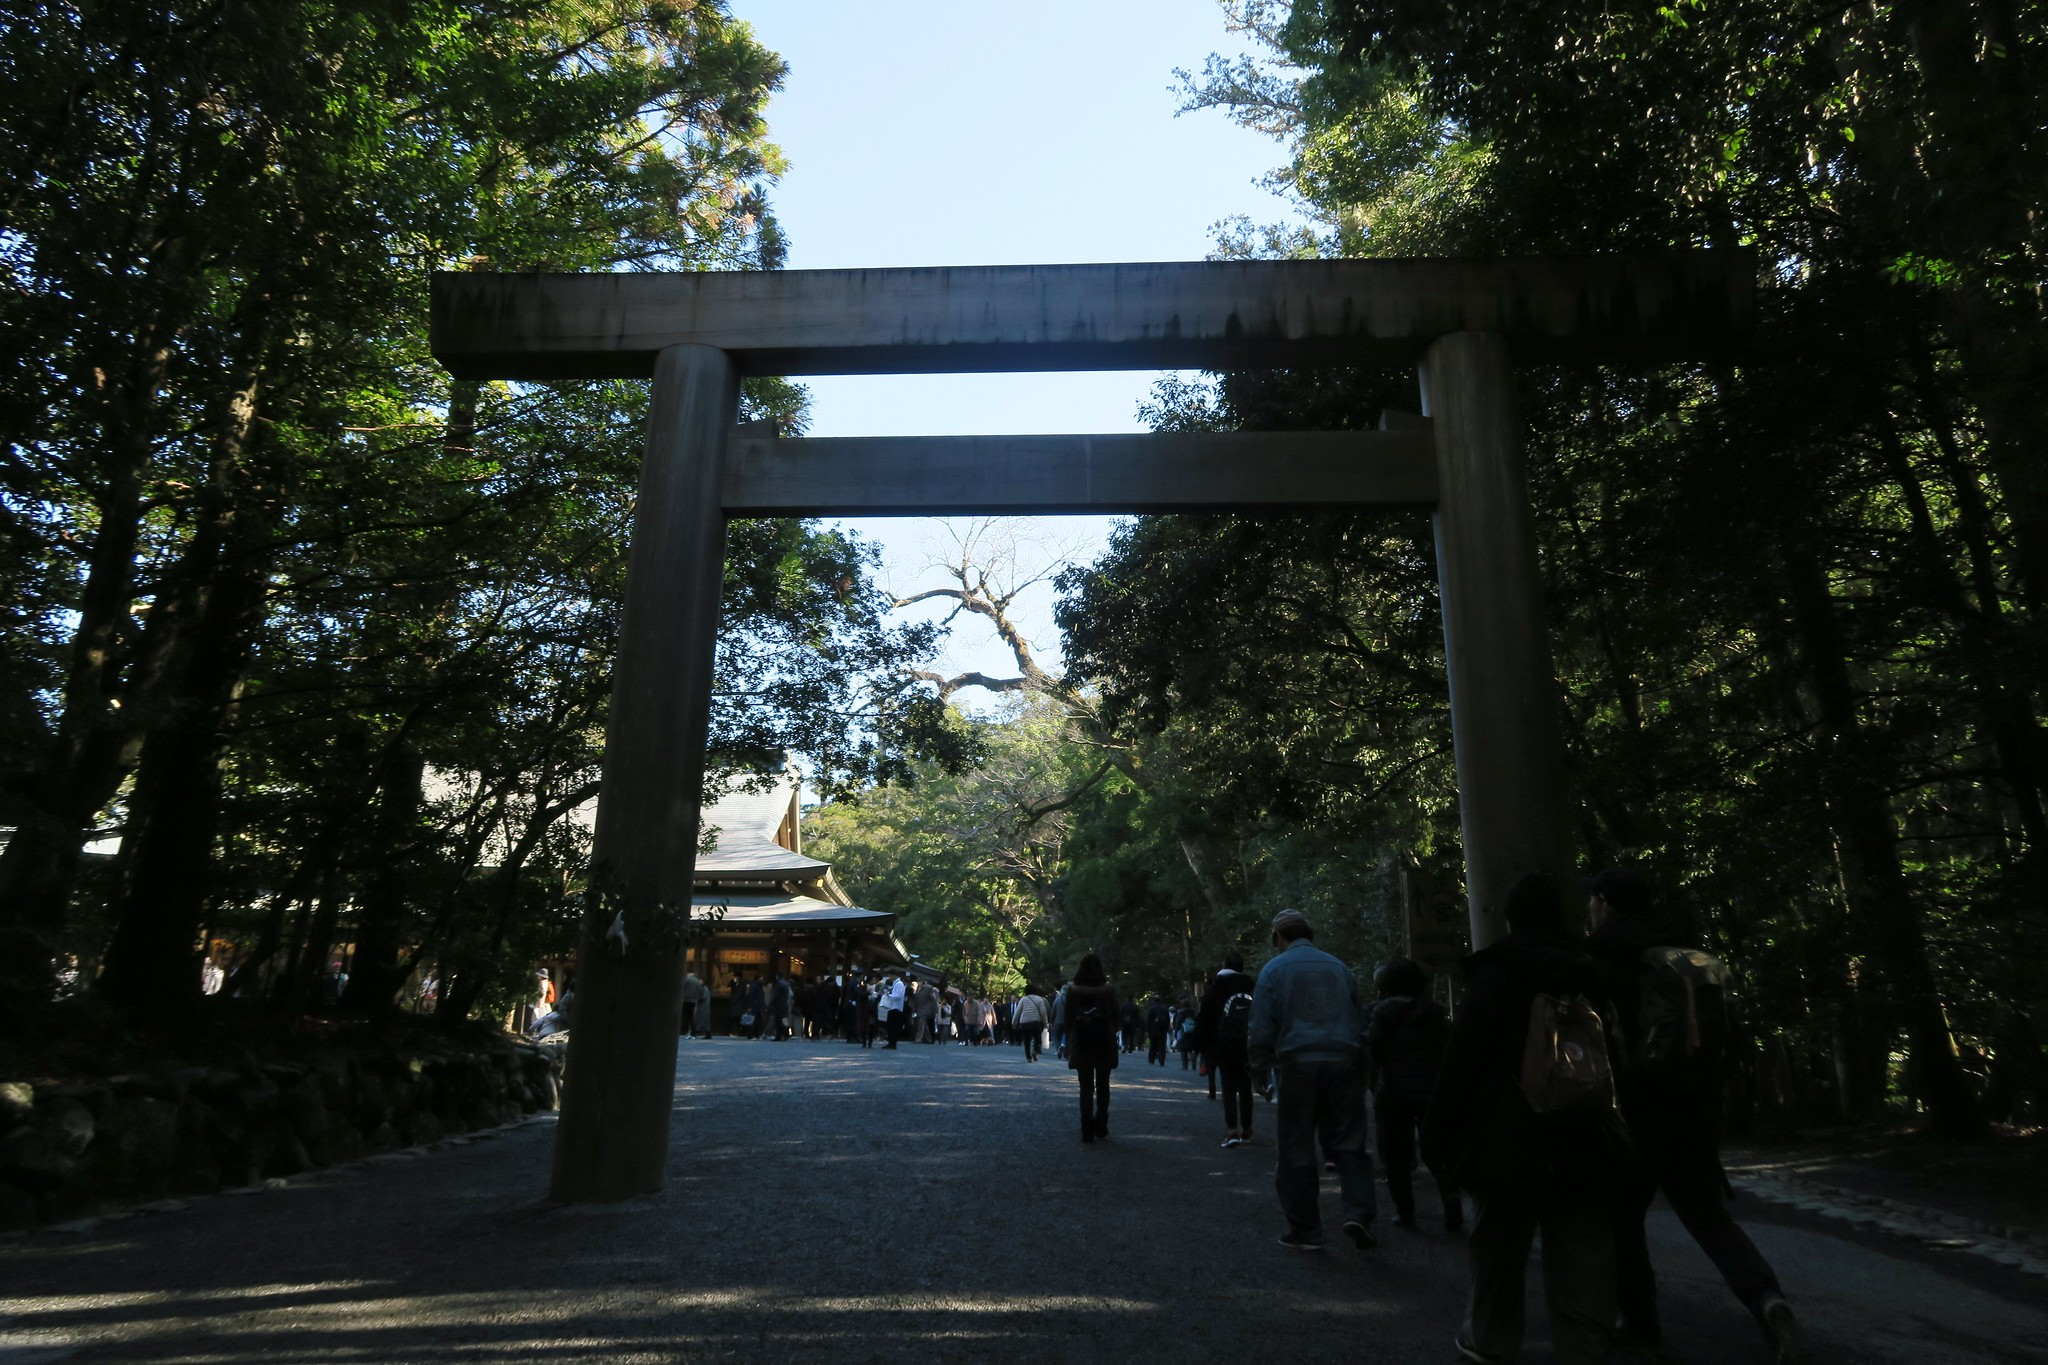 Entering the shrine area